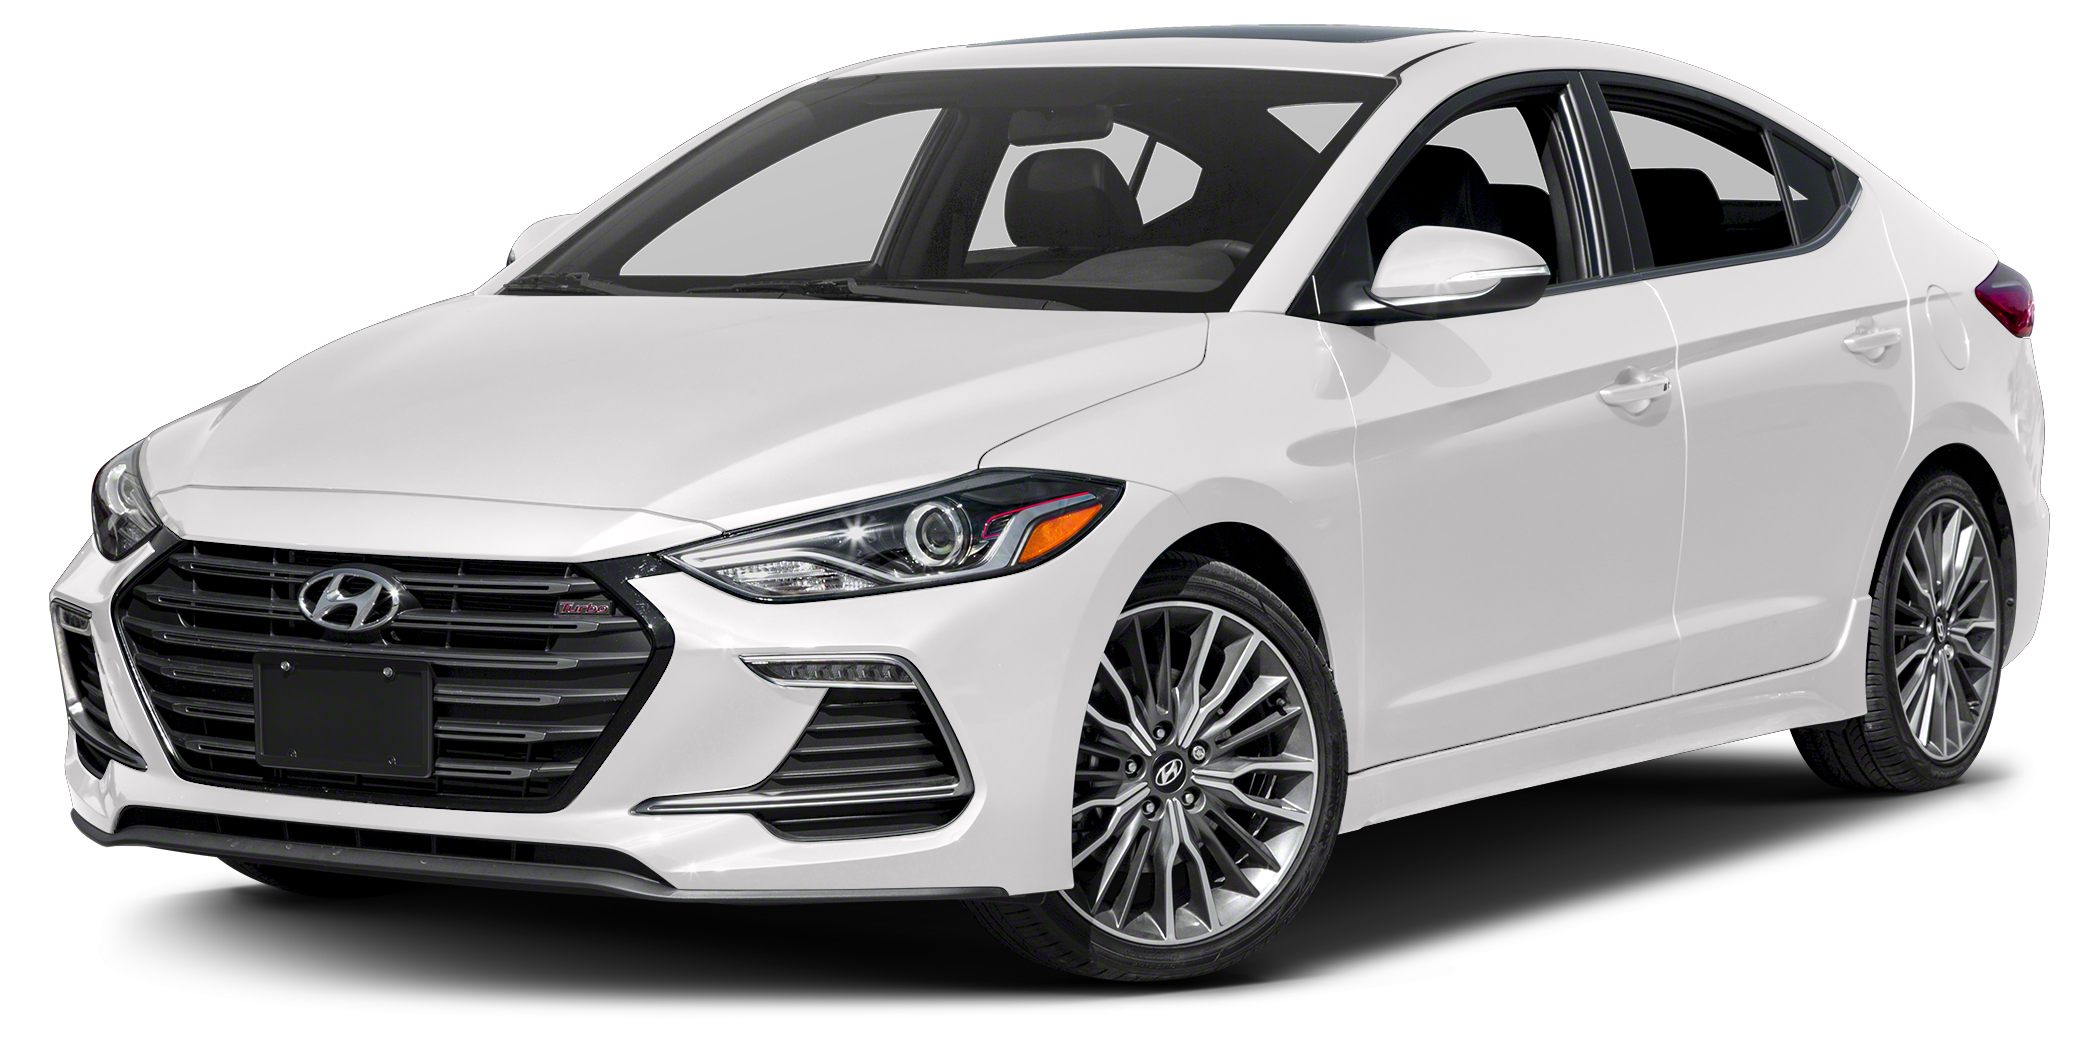 2017 Hyundai Elantra Sport The Our Cost Price reflects all applicable manufacturer rebates andor